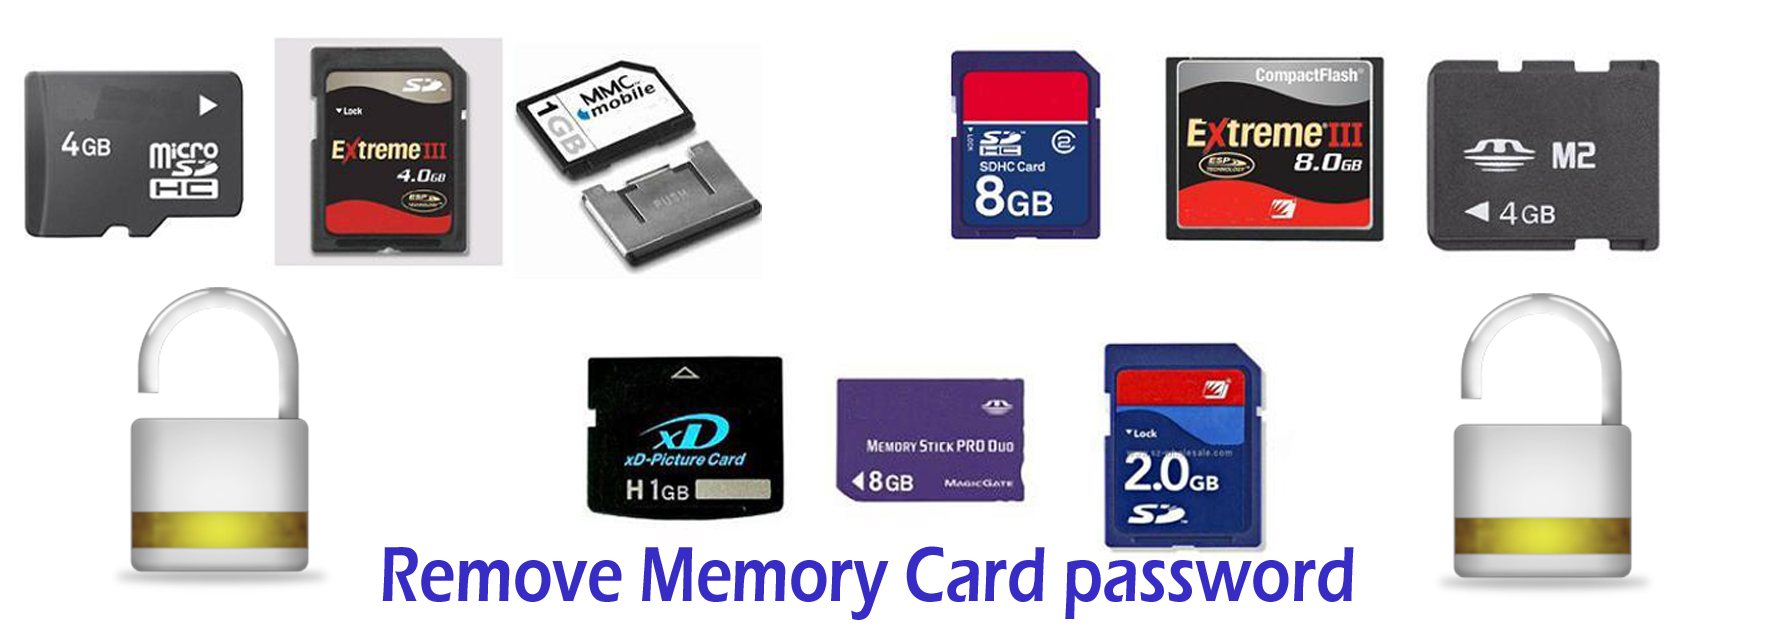 Remove memory card password